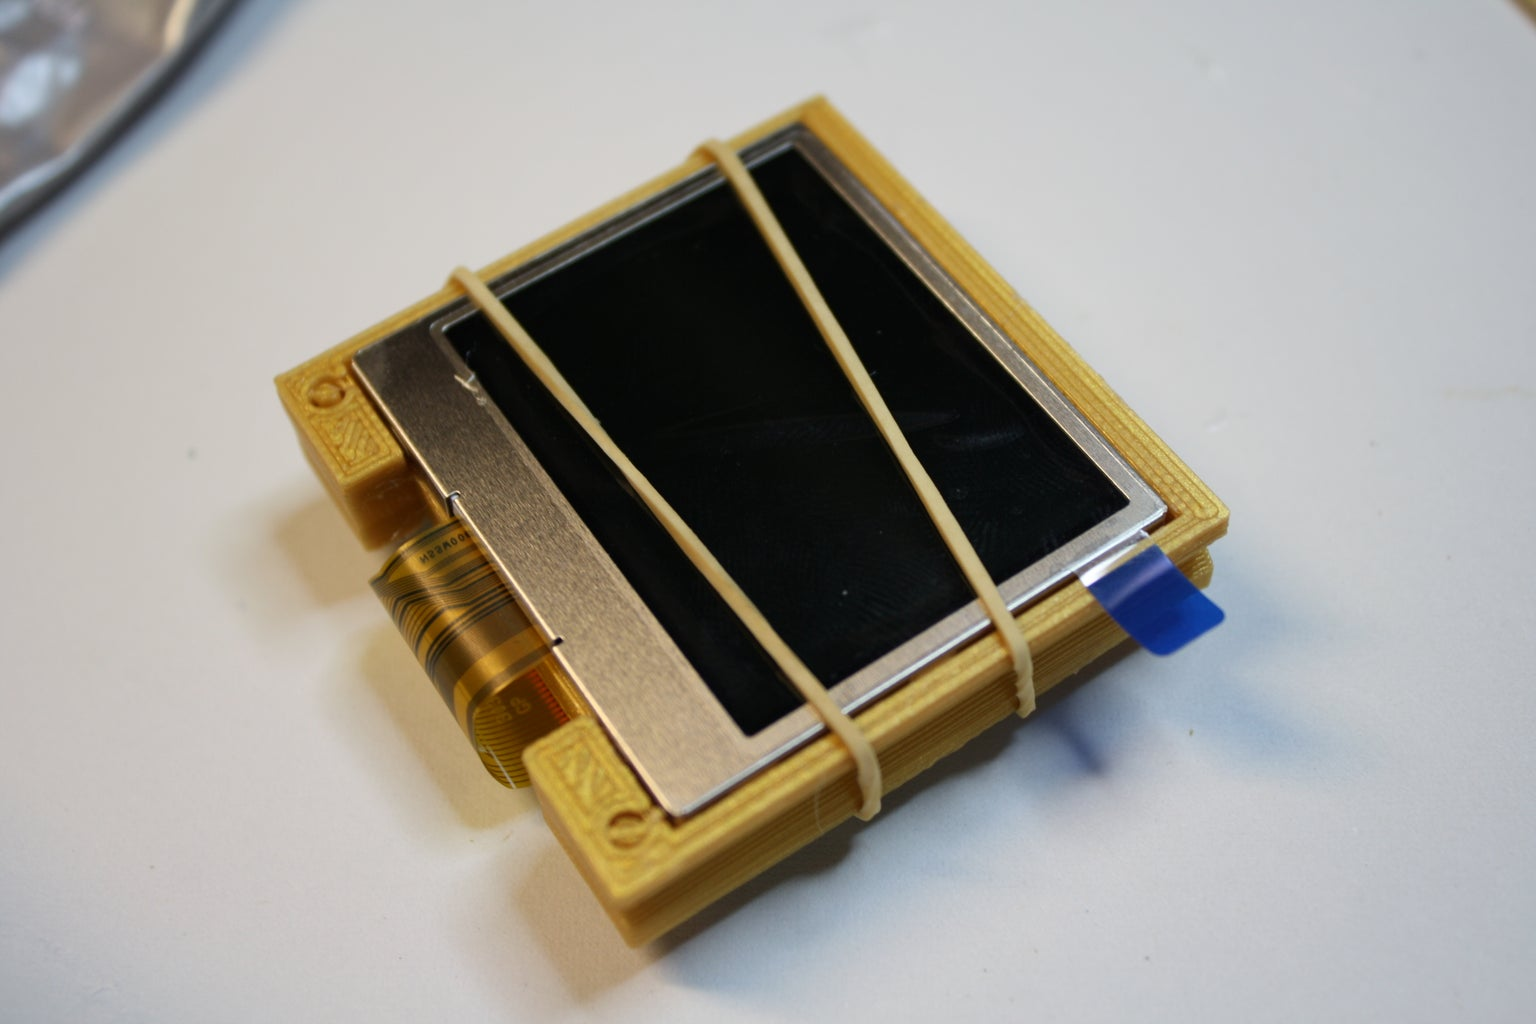 The LCD Display